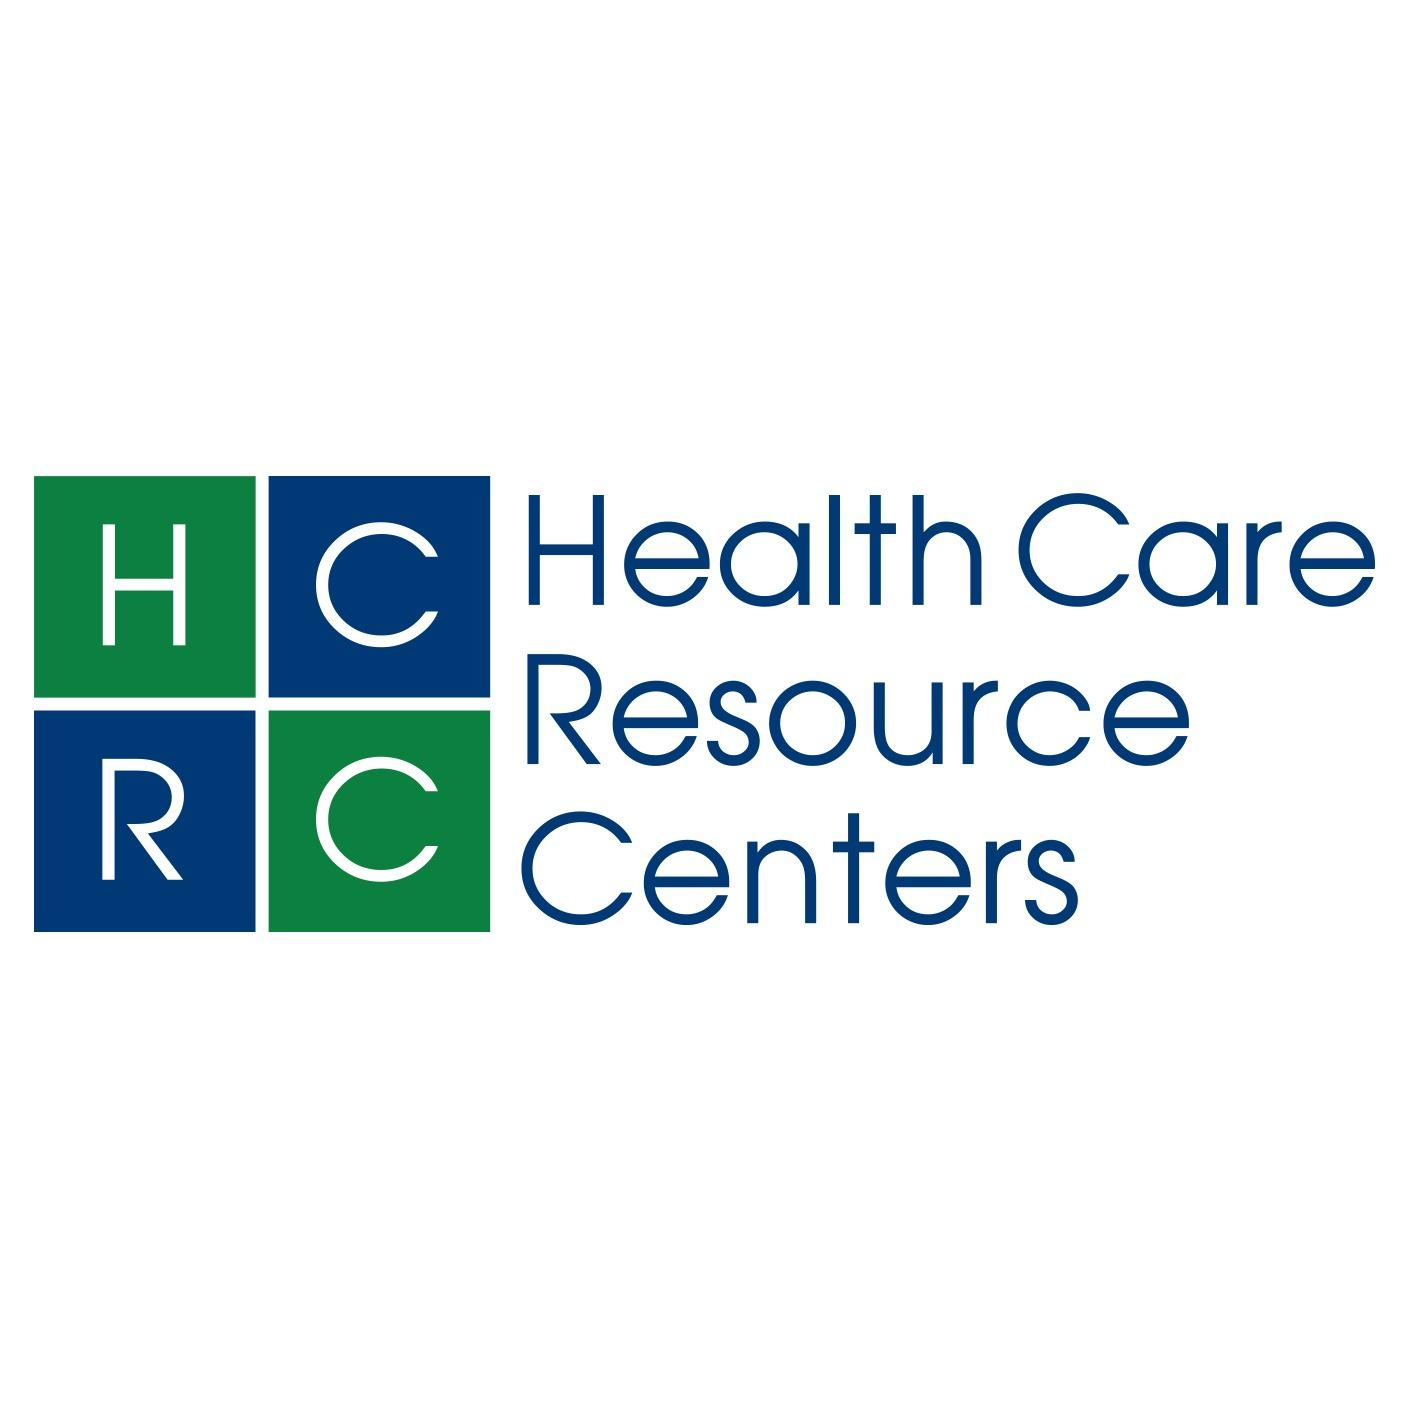 Health Care Resource Centers Northampton